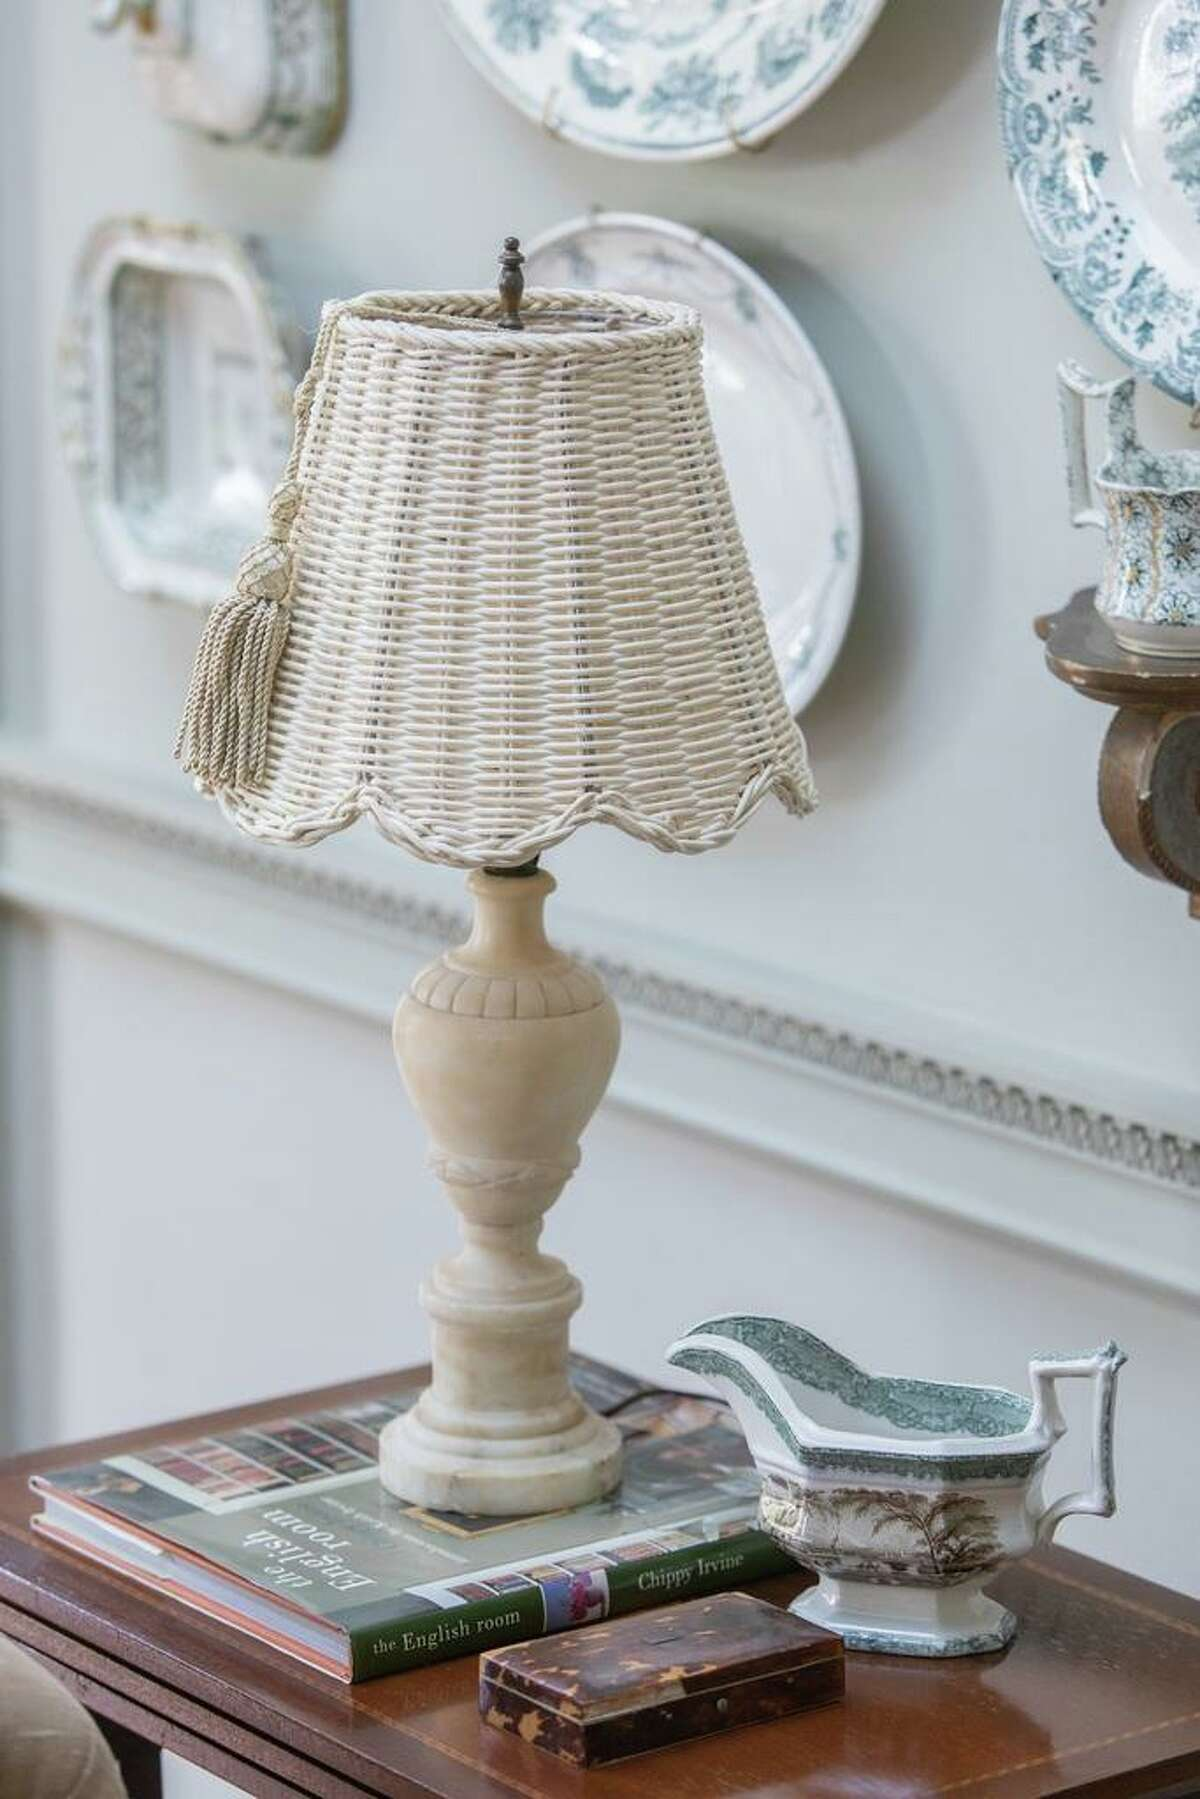 Designer Suzanne Duin describes the shades as fitting an English country manner, a coastal style home or one aiming for Boho chic.